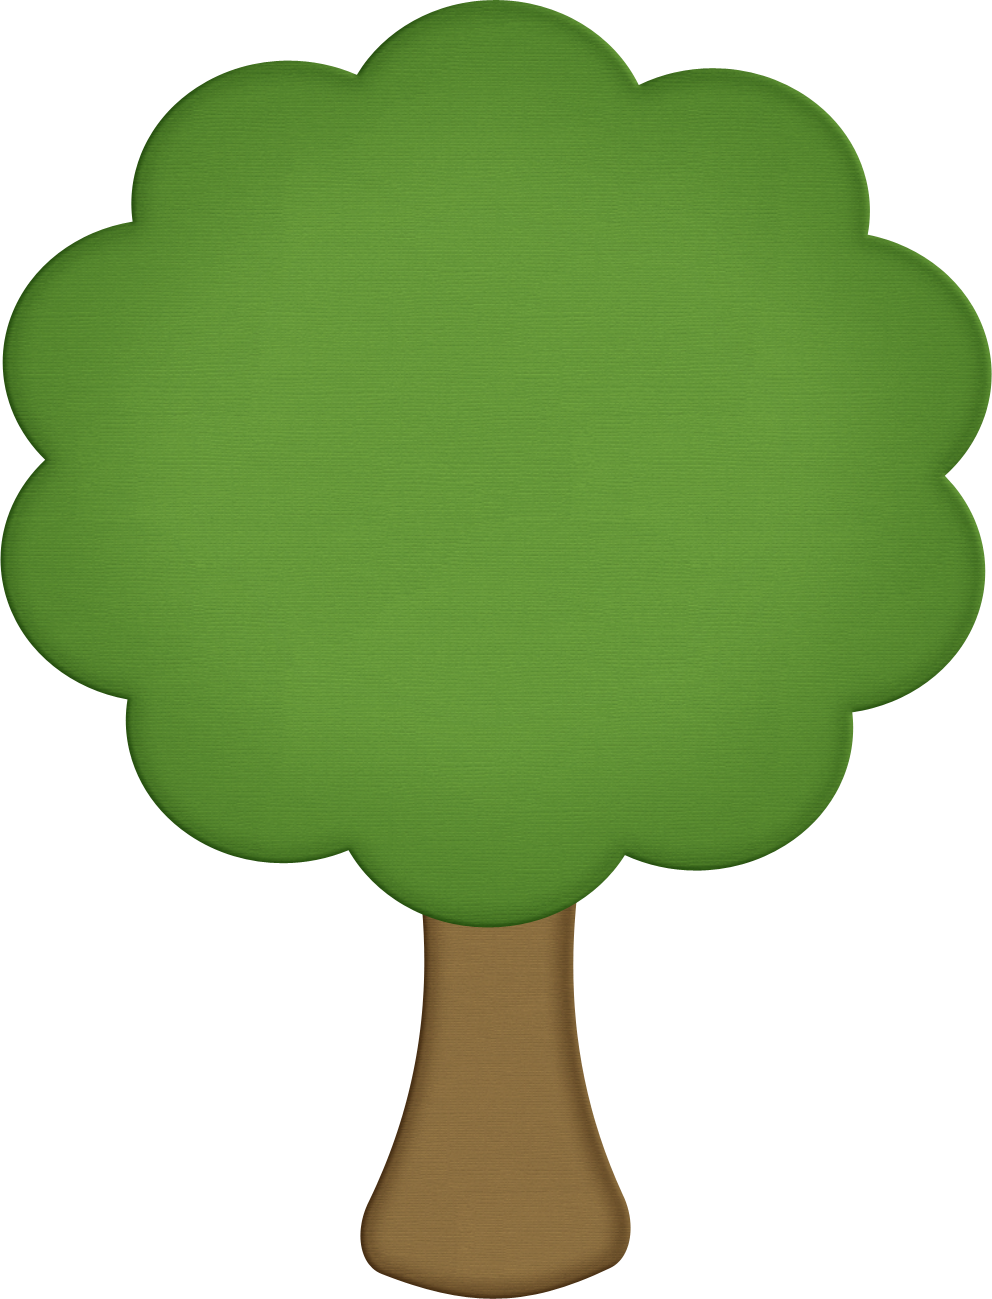 Free clipart fairy apple tree picture free Photo by @daniellemoraesfalcao - Minus | enviro, eko, les ... picture free